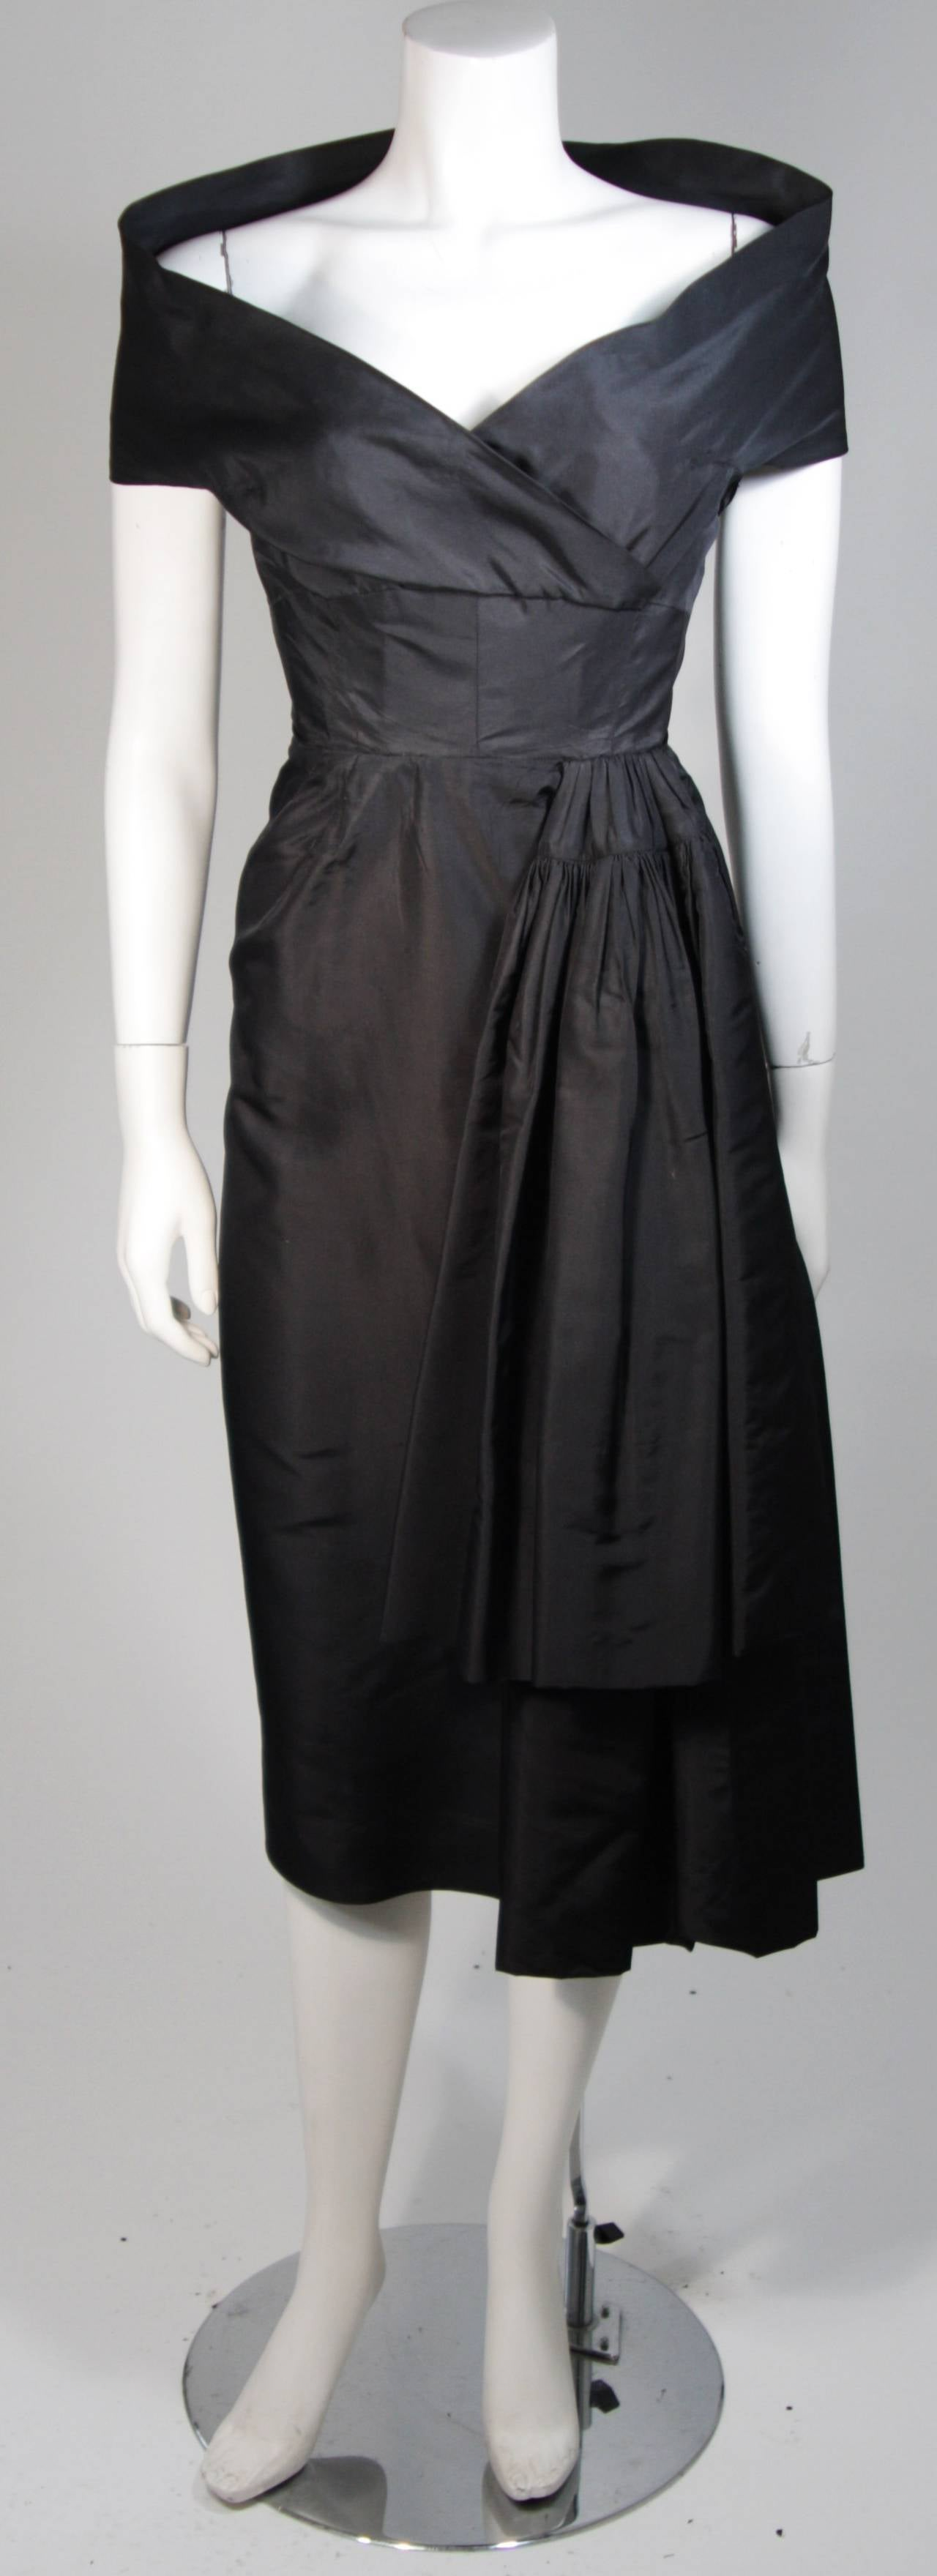 Ceil Chapman Black Cocktail Dress with Draped Detail Size Small 2